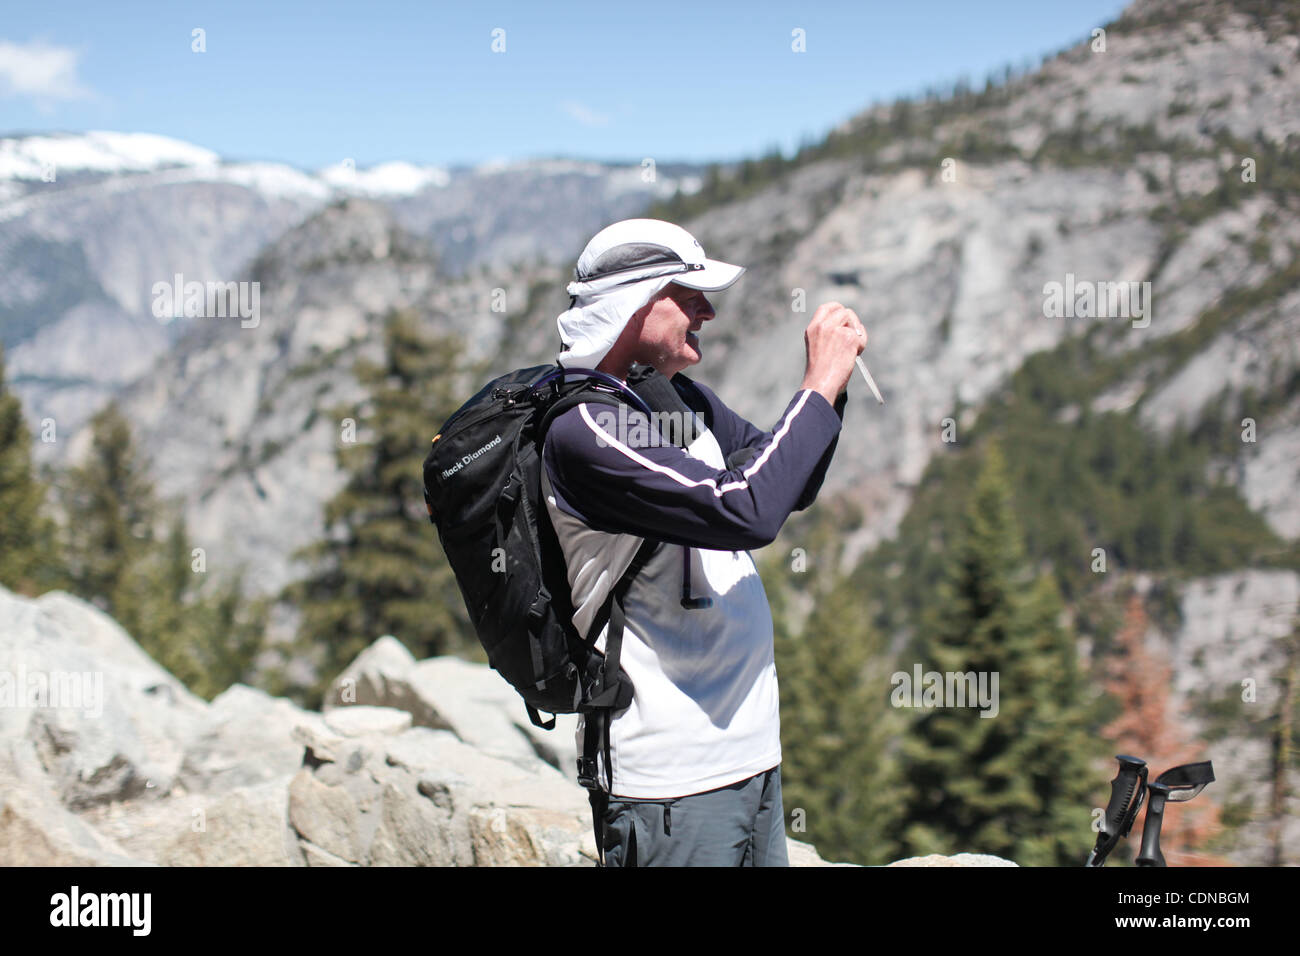 Each year more than 3 million tourists come to Yosemite National Park many of which leave with snap shots taken - Stock Image